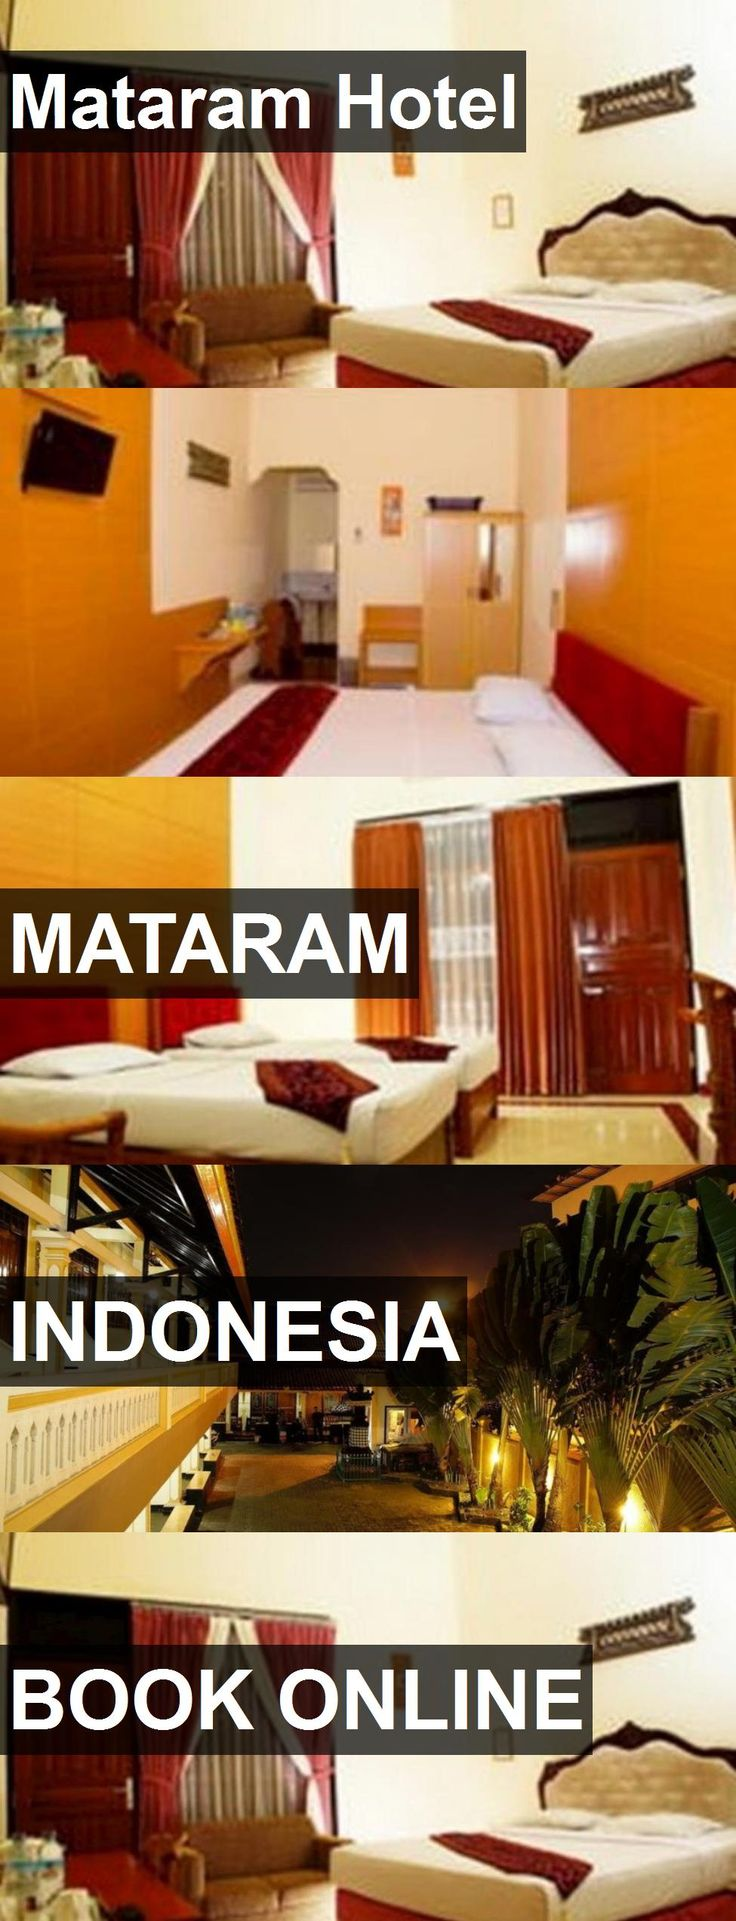 Hotel Mataram Hotel in Mataram, Indonesia. For more information, photos, reviews and best prices please follow the link. #Indonesia #Mataram #MataramHotel #hotel #travel #vacation